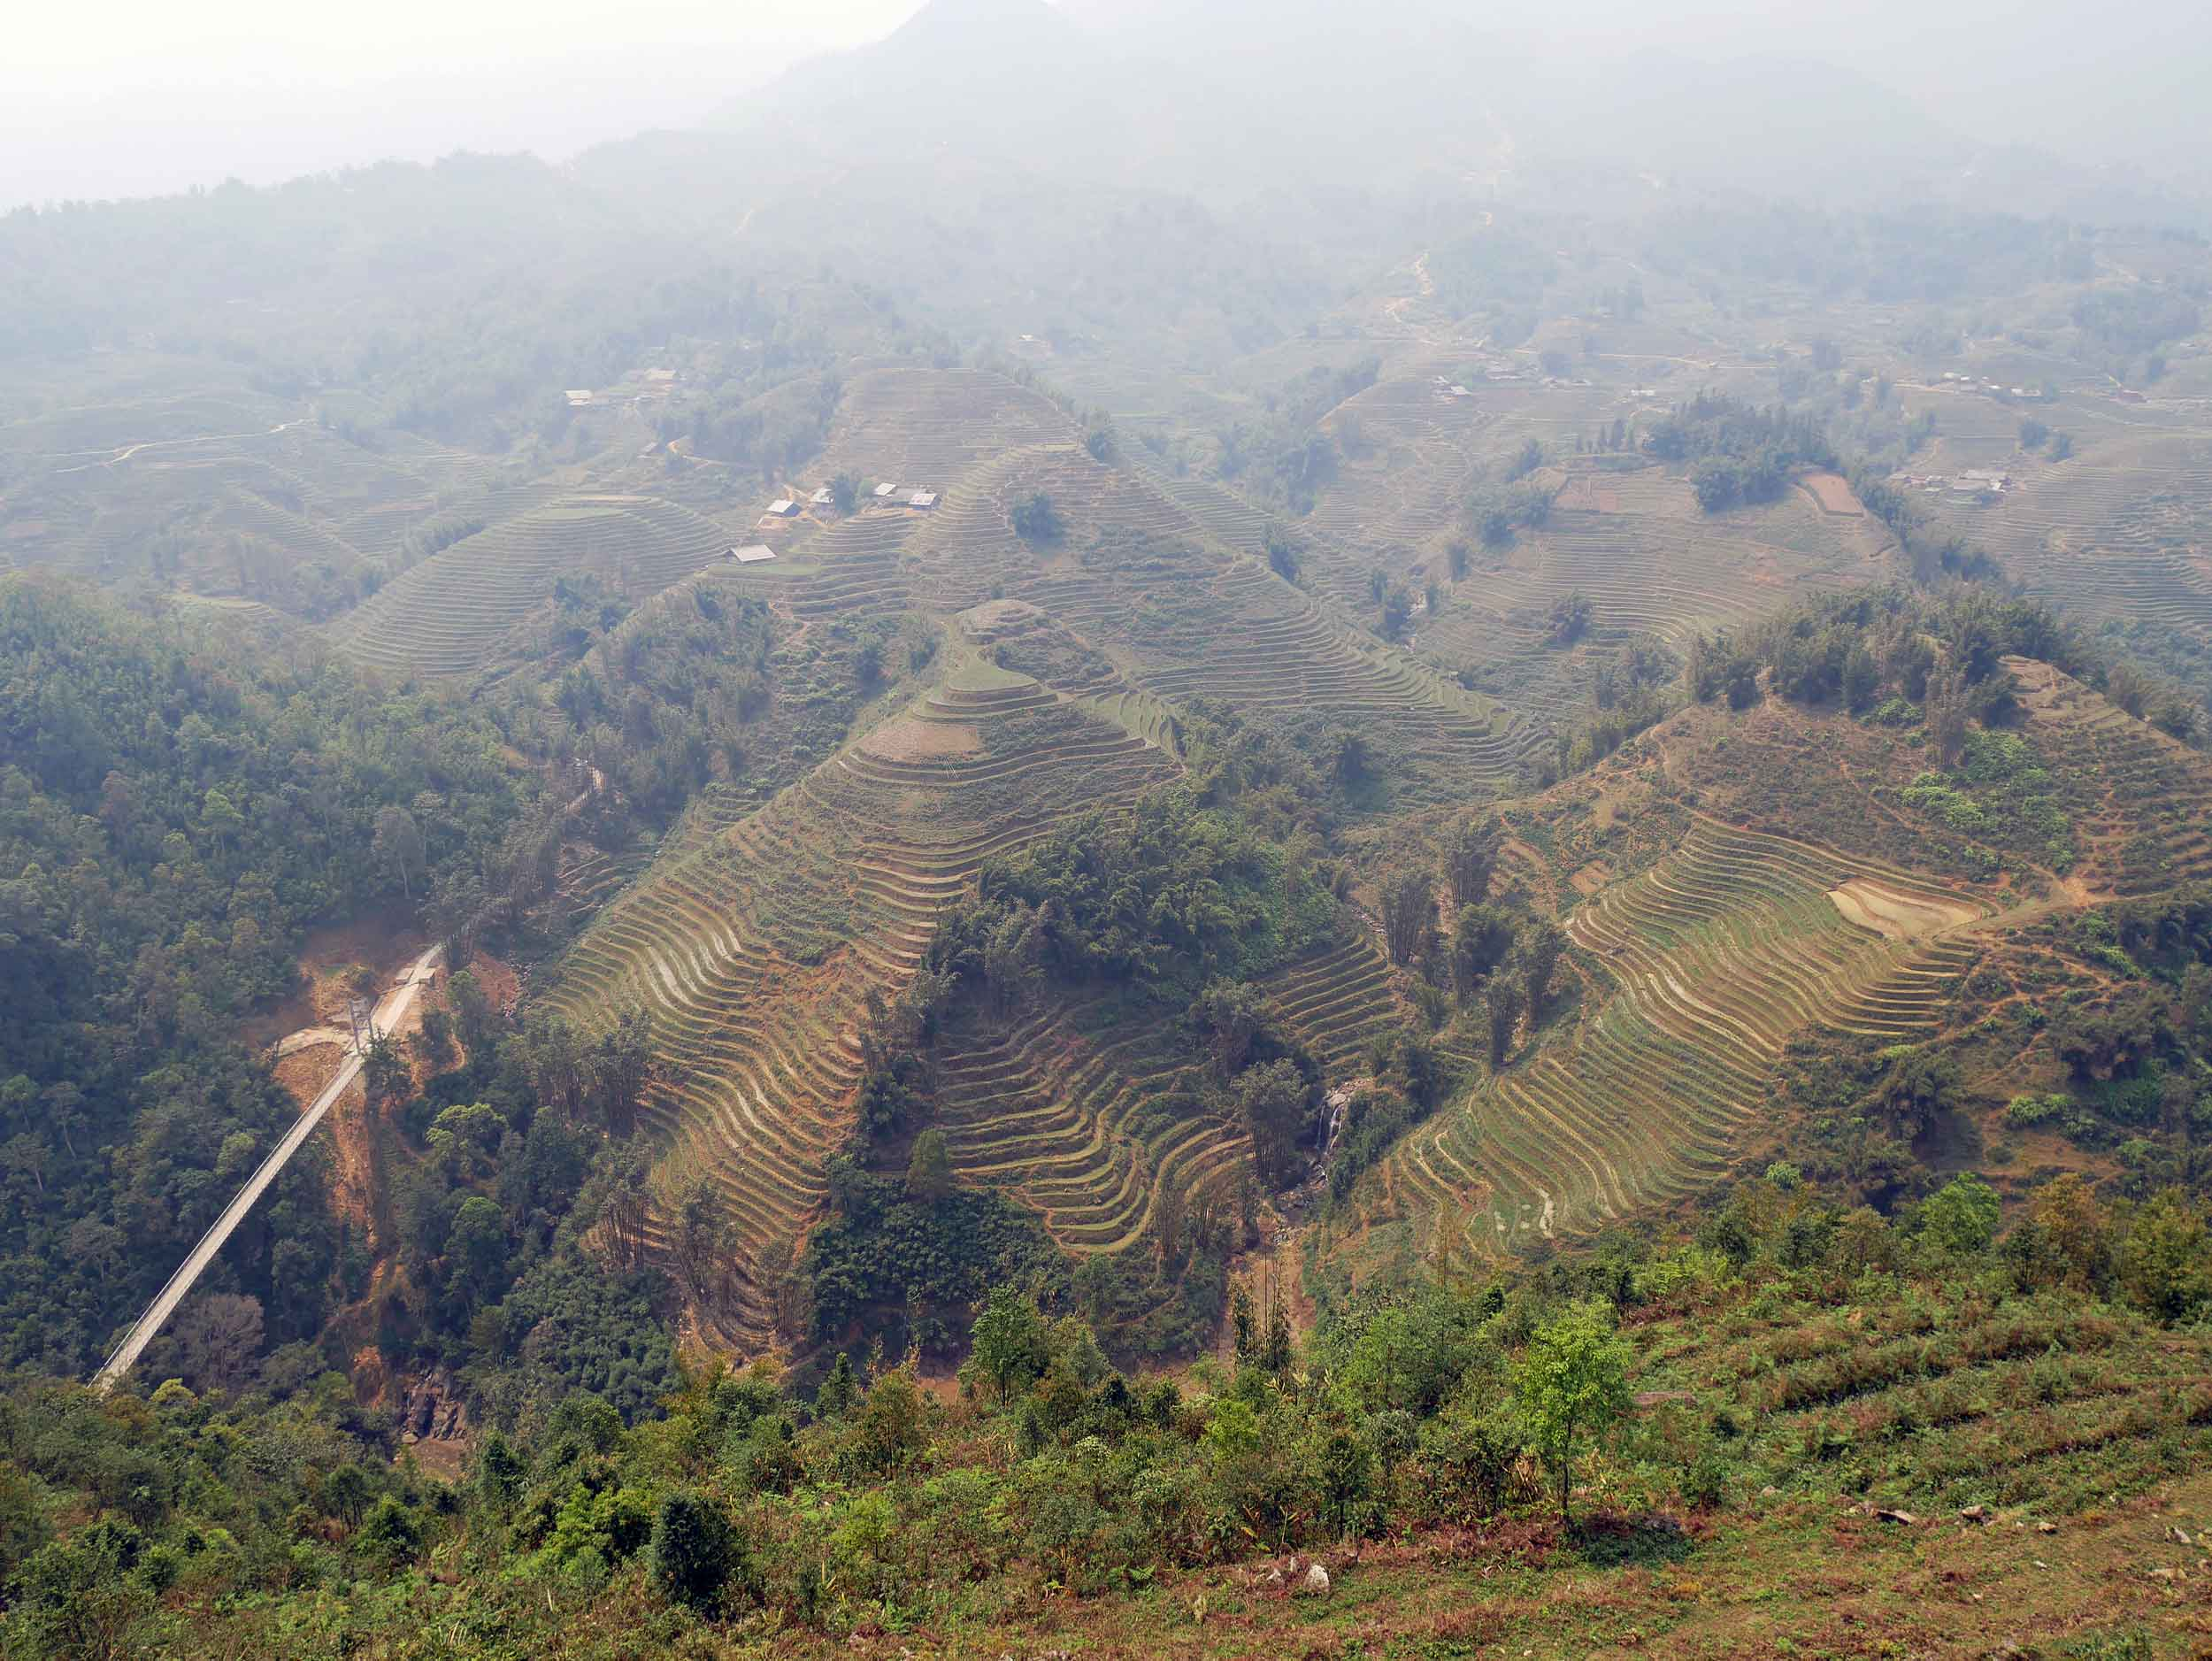 One of the many stunning vistas we enjoyed while on our three days of trekking in the terraced Hoàng Liên Son mountain ranges near sapa (Mar 24).